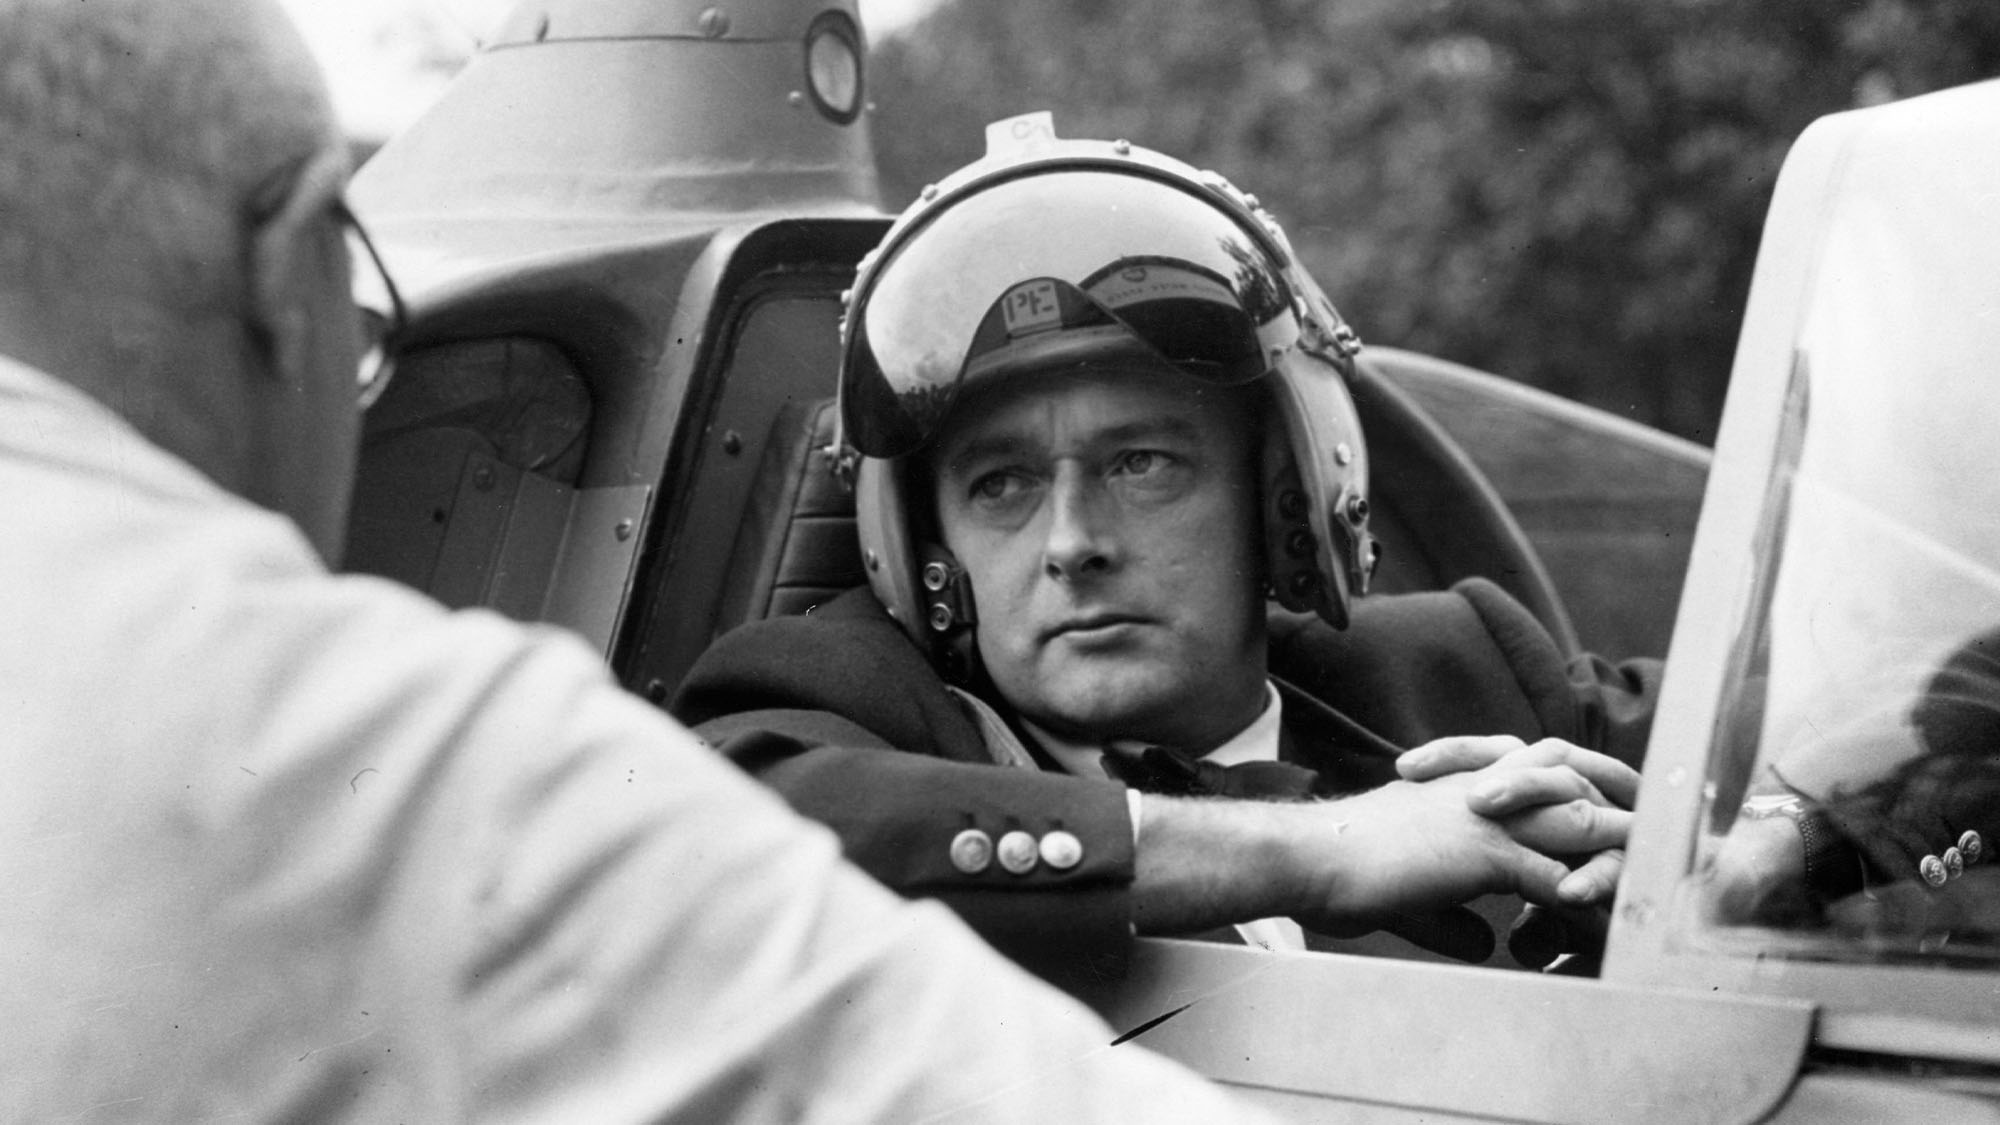 24th September 1958: Donald Campbell (1921 - 1967) in his jet hydroplane 'Bluebird' having a talk with his veteran mechanic Leo Villa. He is to attempt to break the water speed record on Coniston Water in the Lake District.